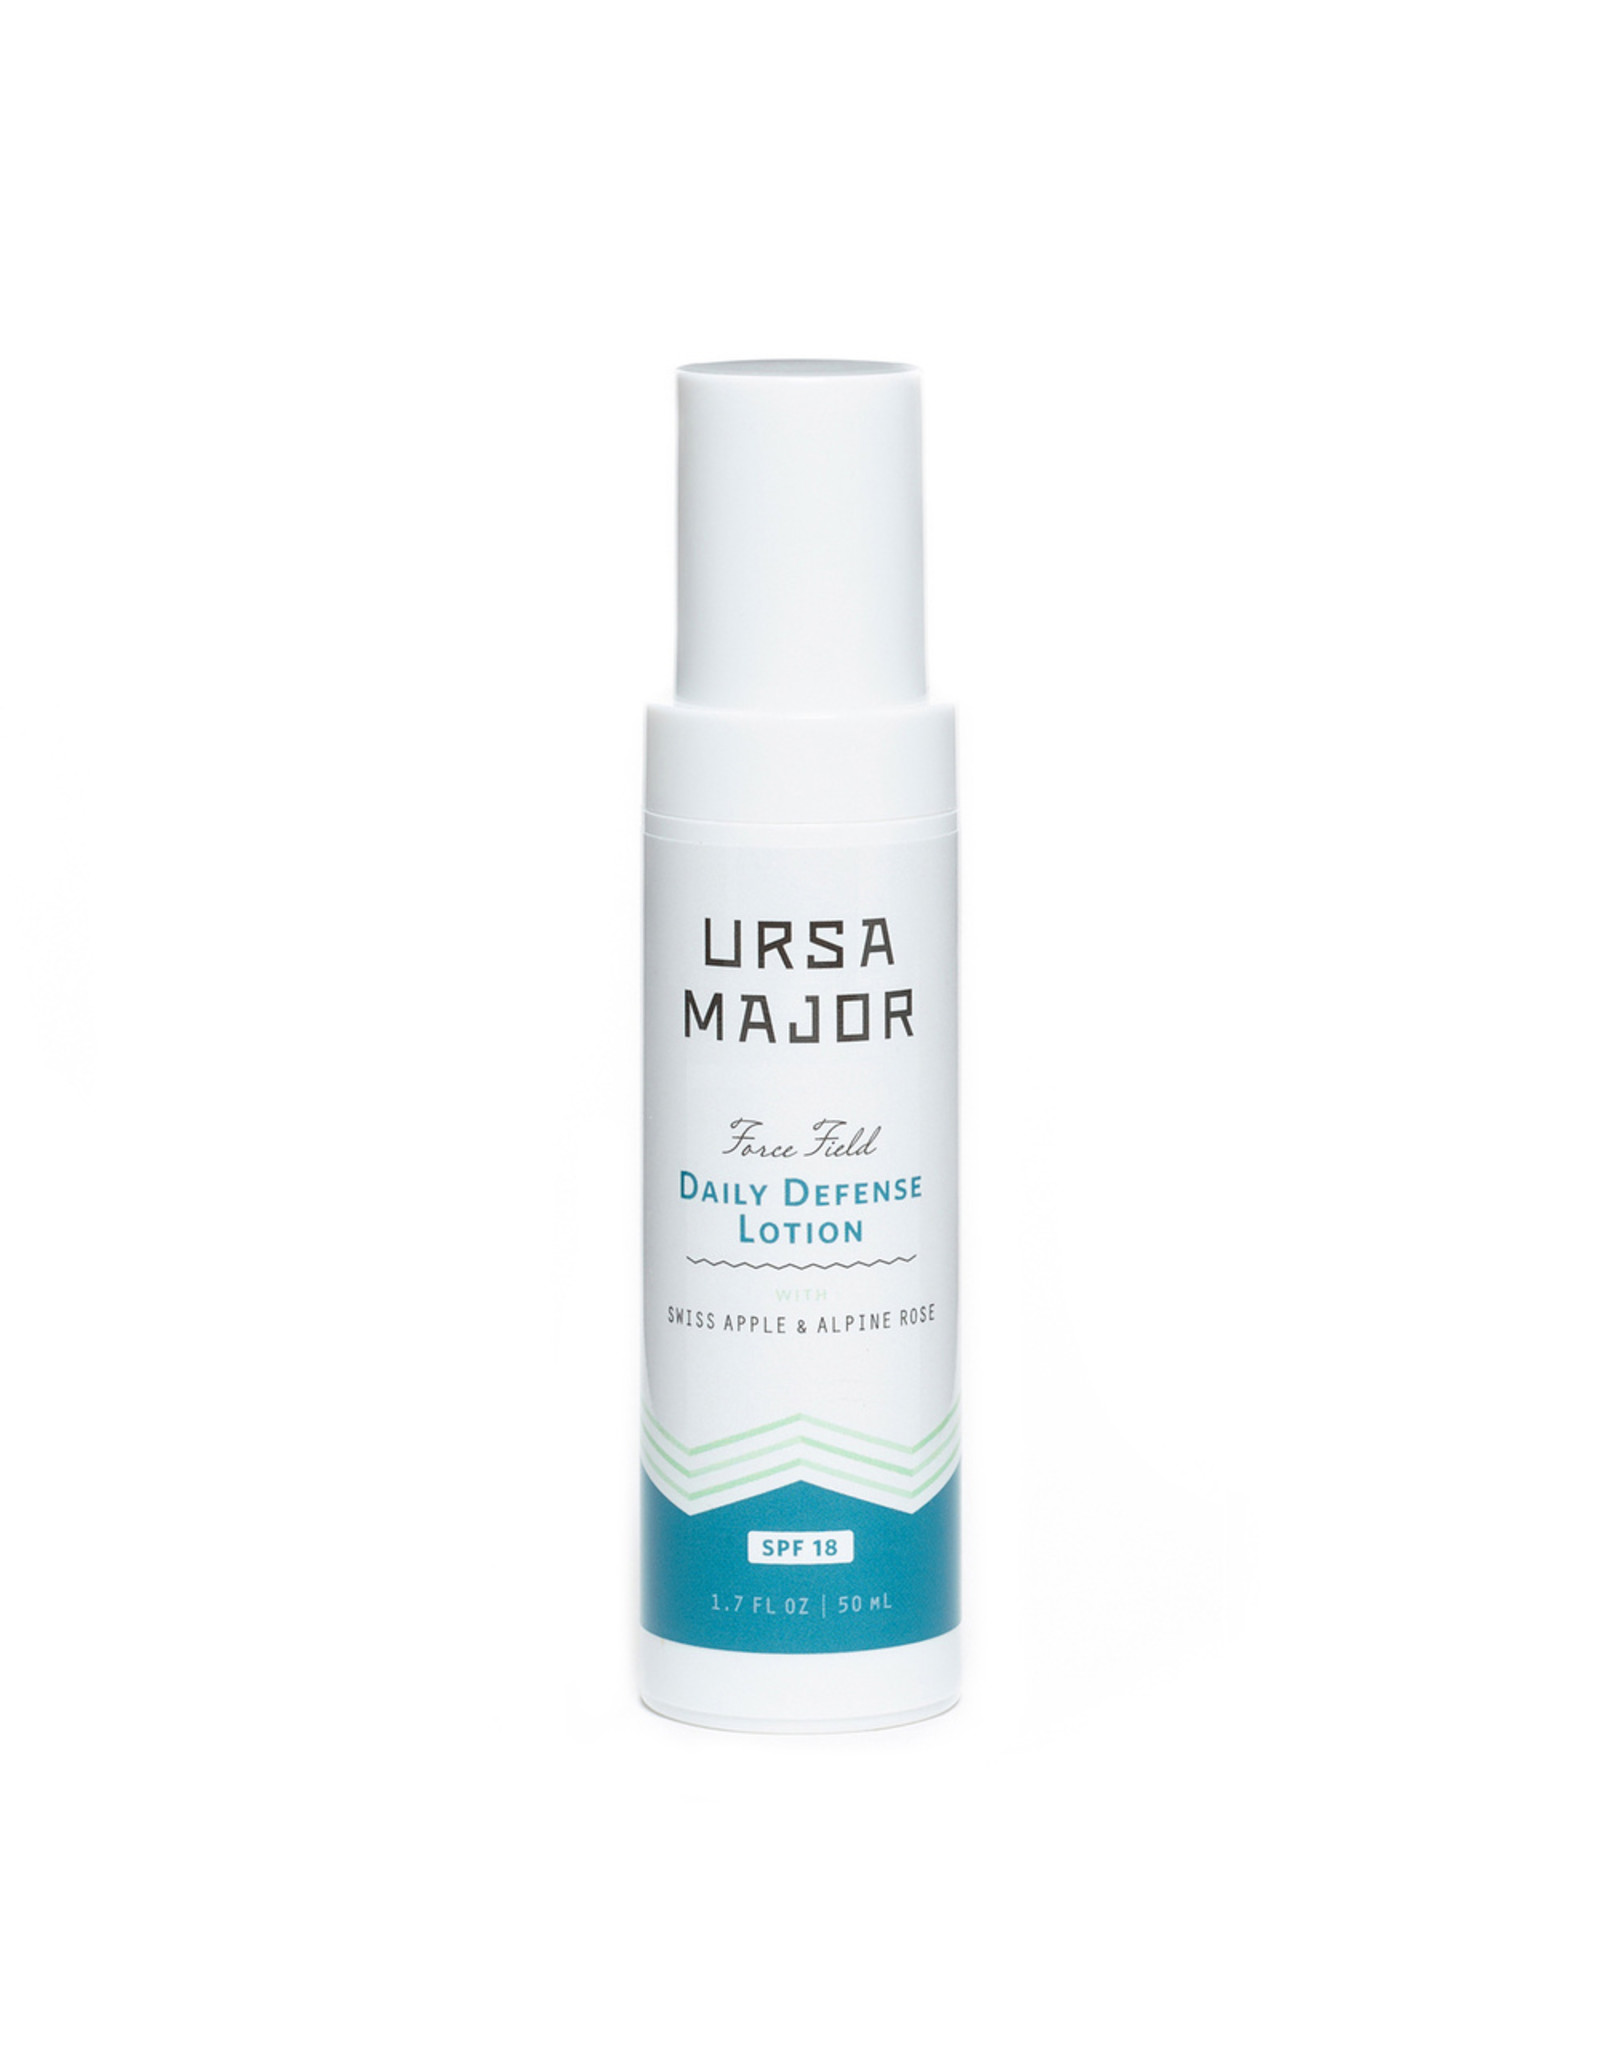 Ursa Major Ursa Major Force Field Daily Defense Lotion with SPF 18